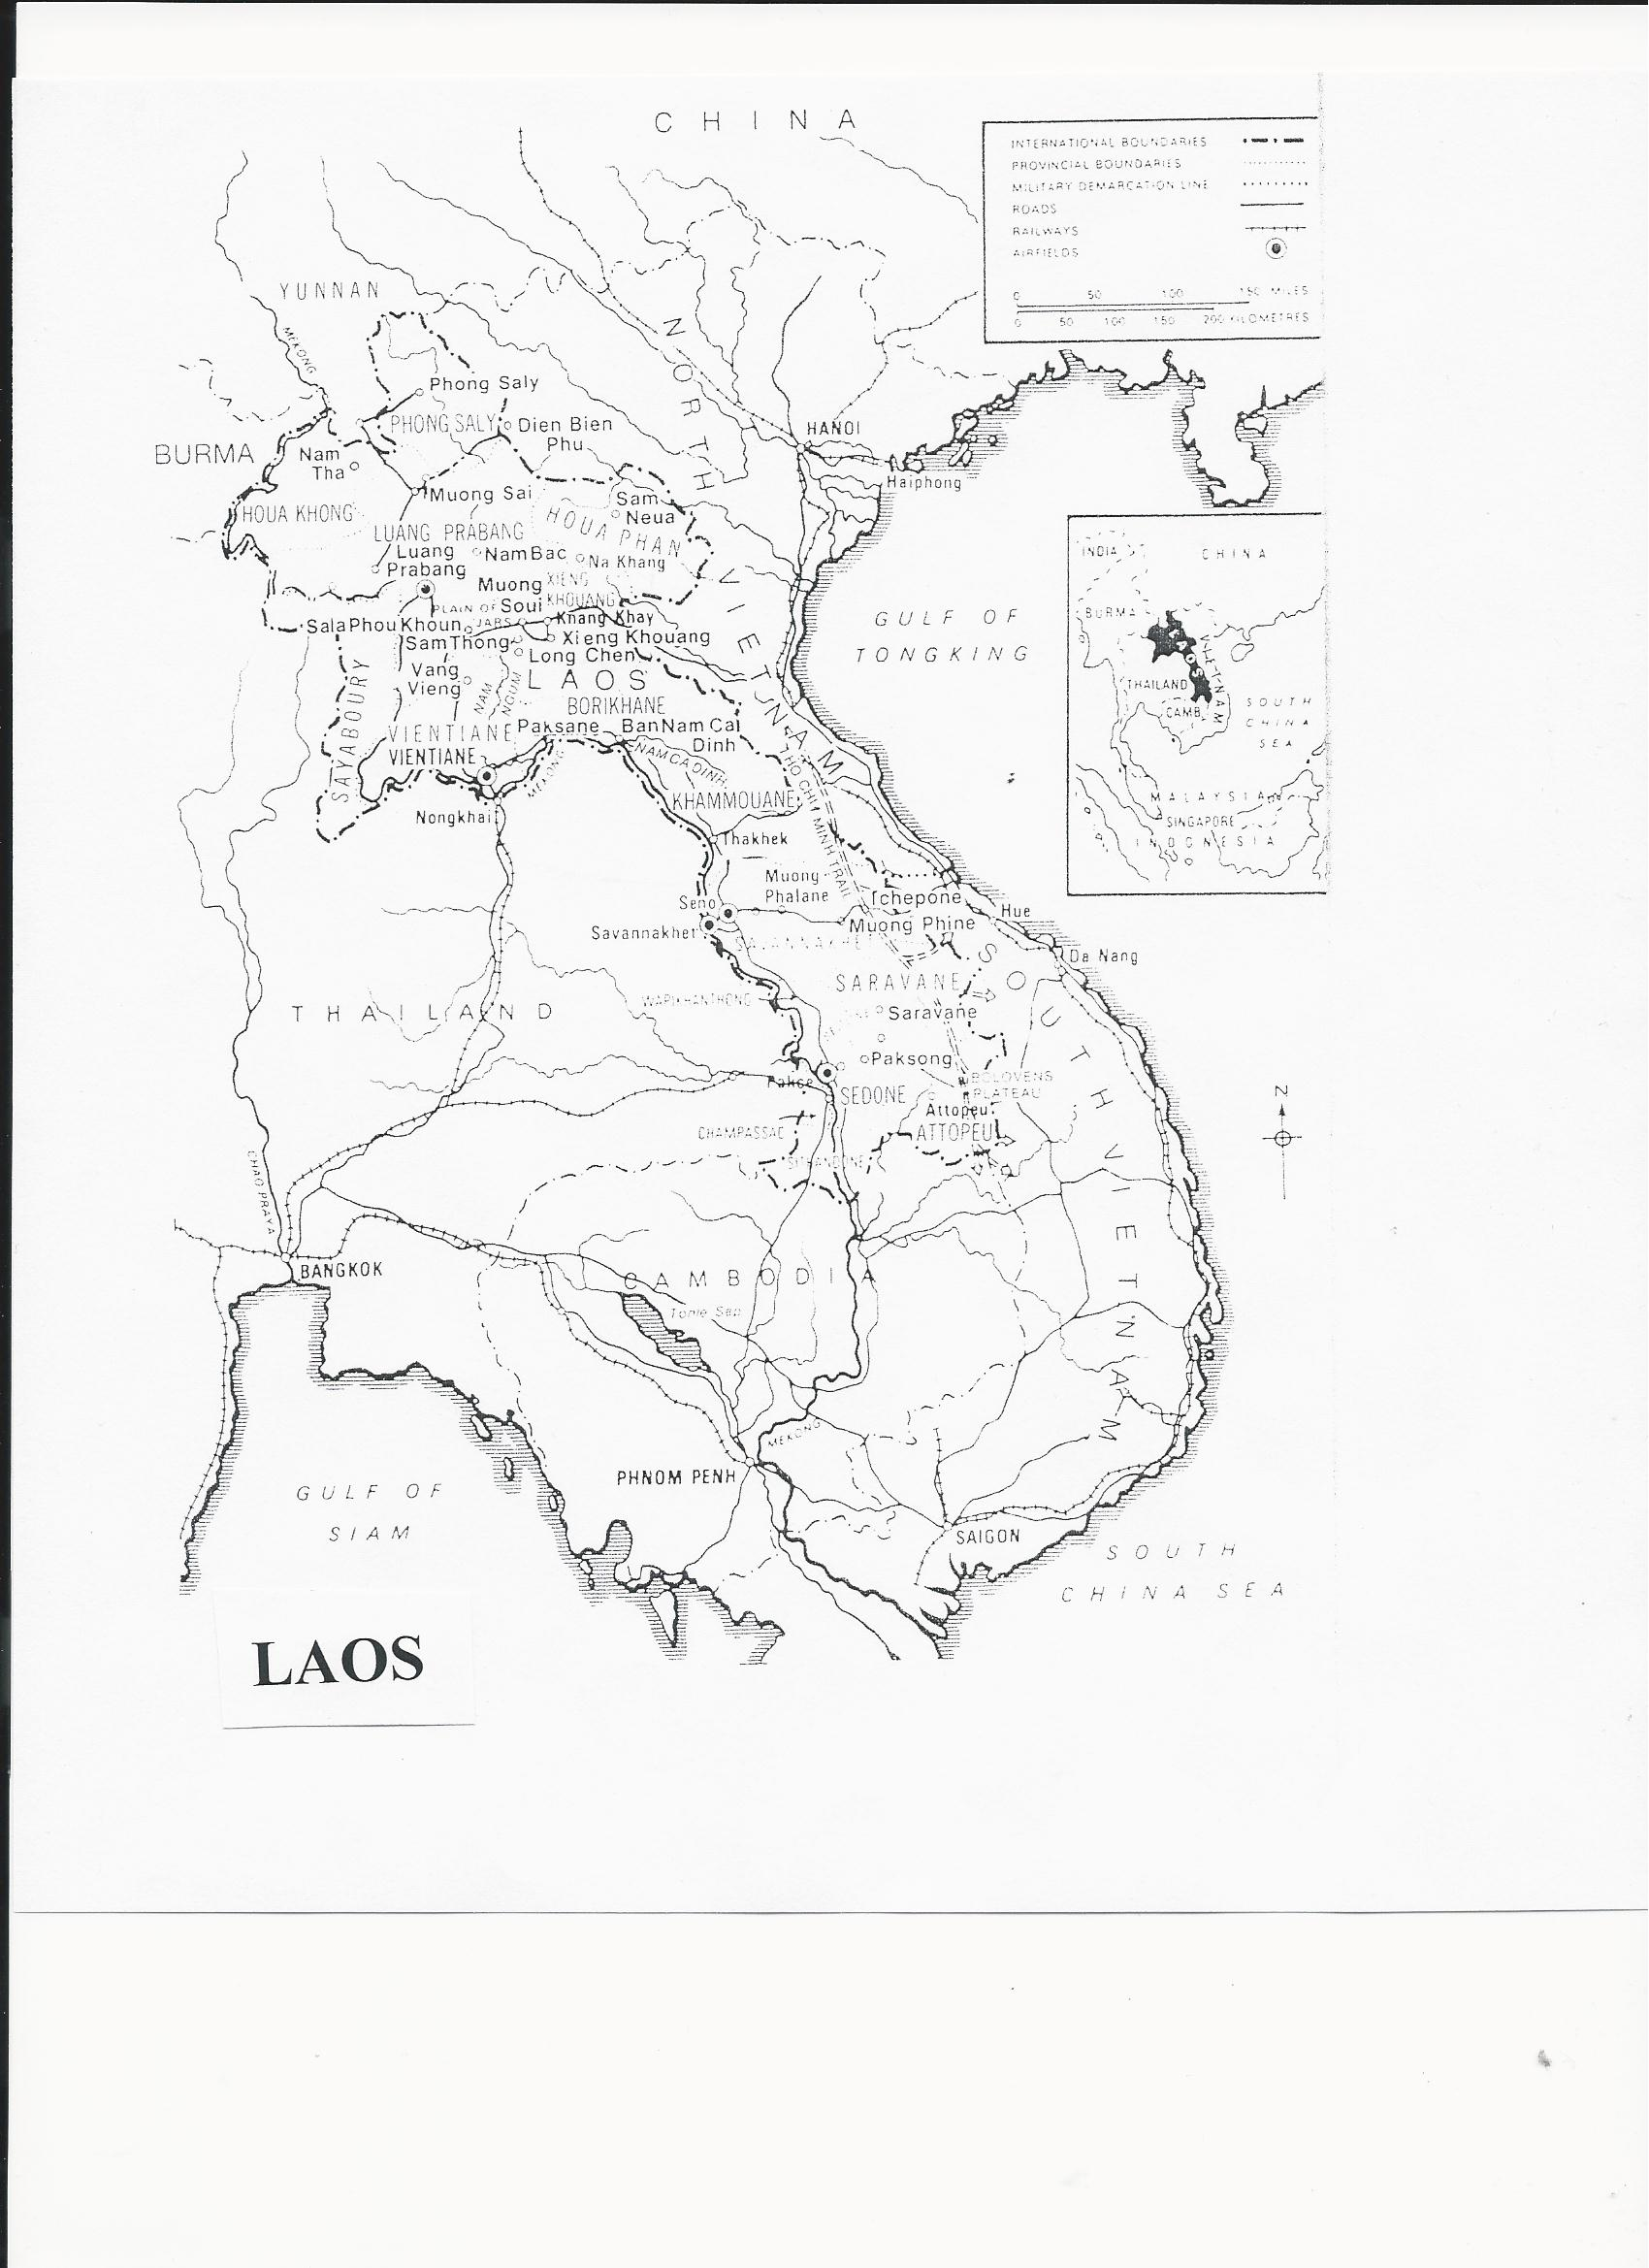 image3.jpeg Laos Crisis--January 1961